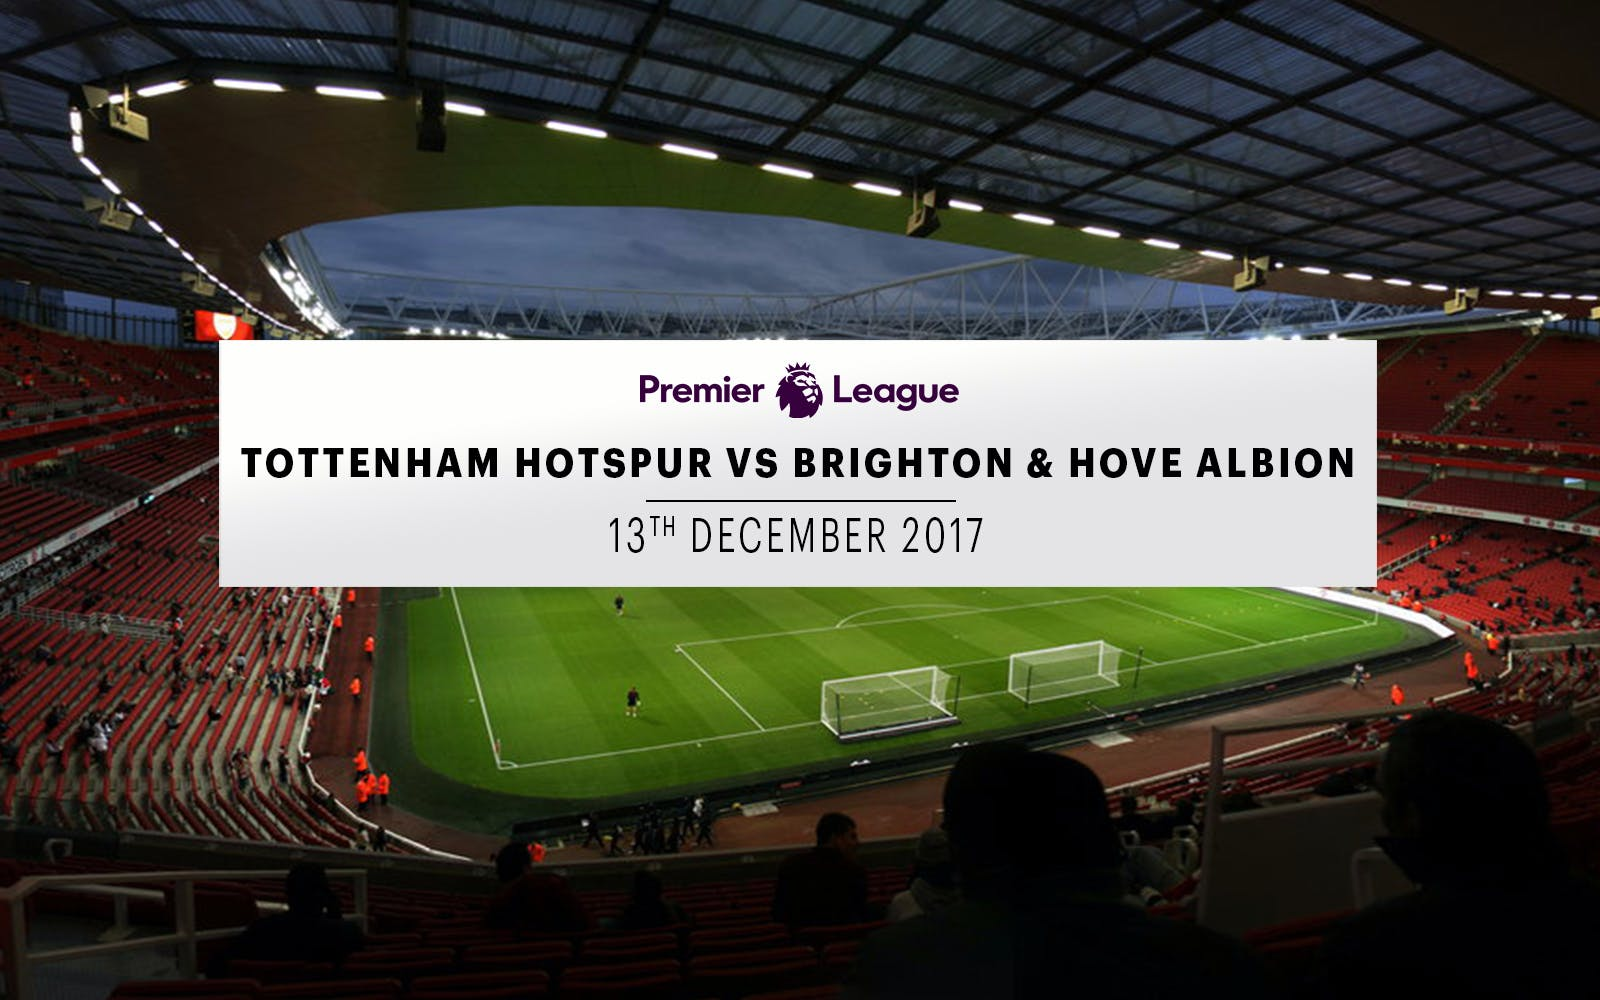 tottenham hotspur vs brighton & hove albion - 13th december 2017-1